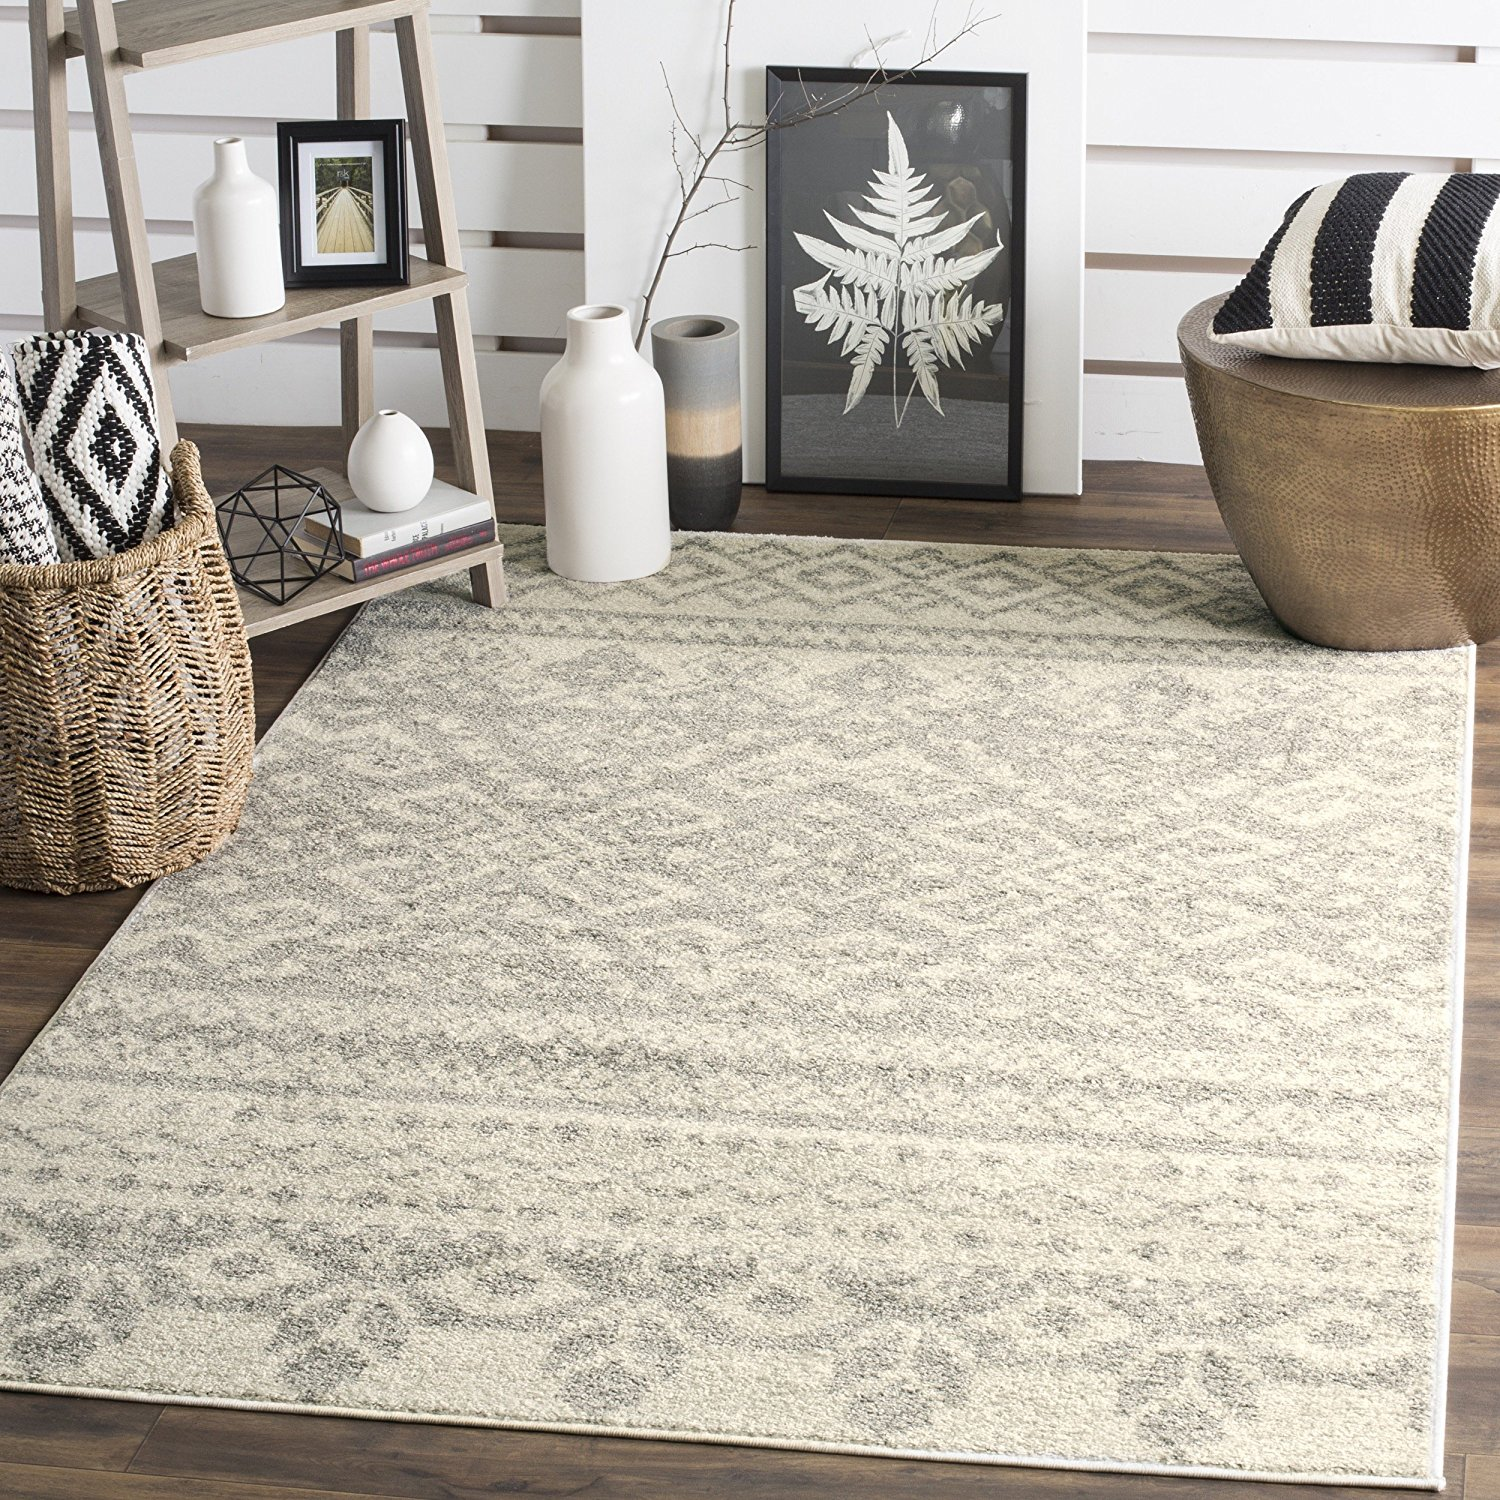 Gorgeous Farmhouse Style Area Rugs Under 100